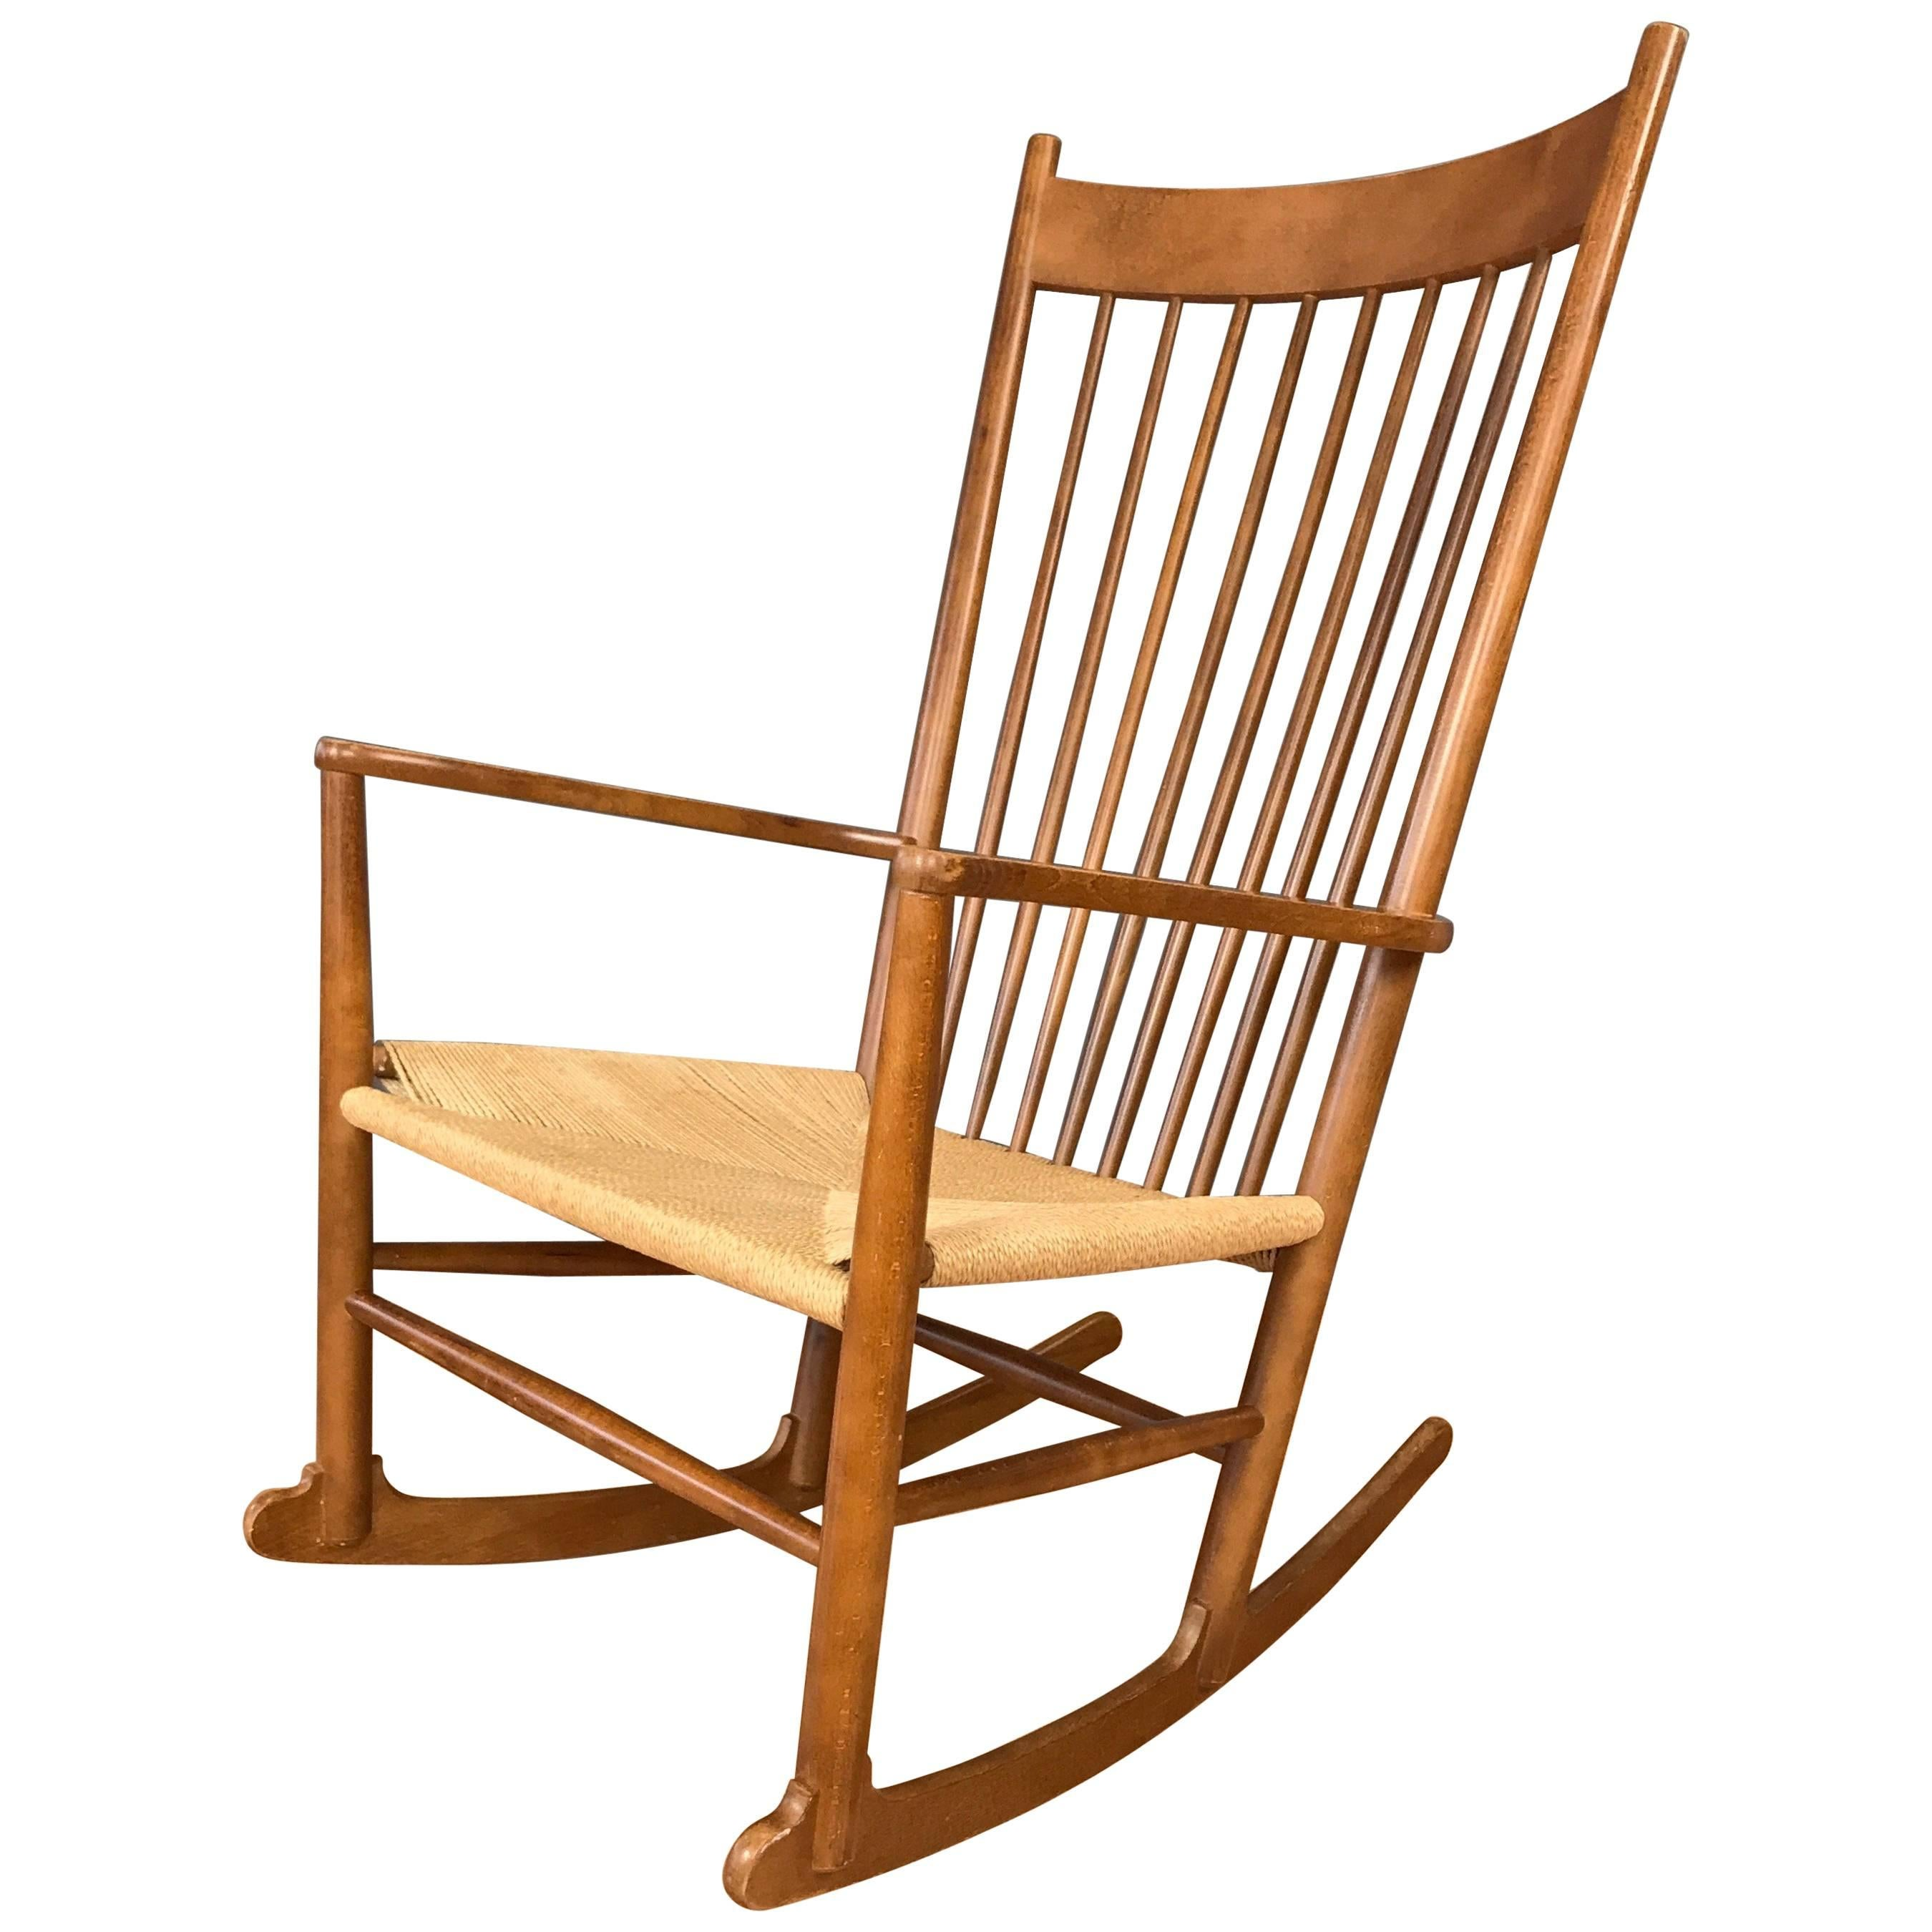 hans wegner rocking chair phil and ted high review vintage j16 beech at 1stdibs for sale